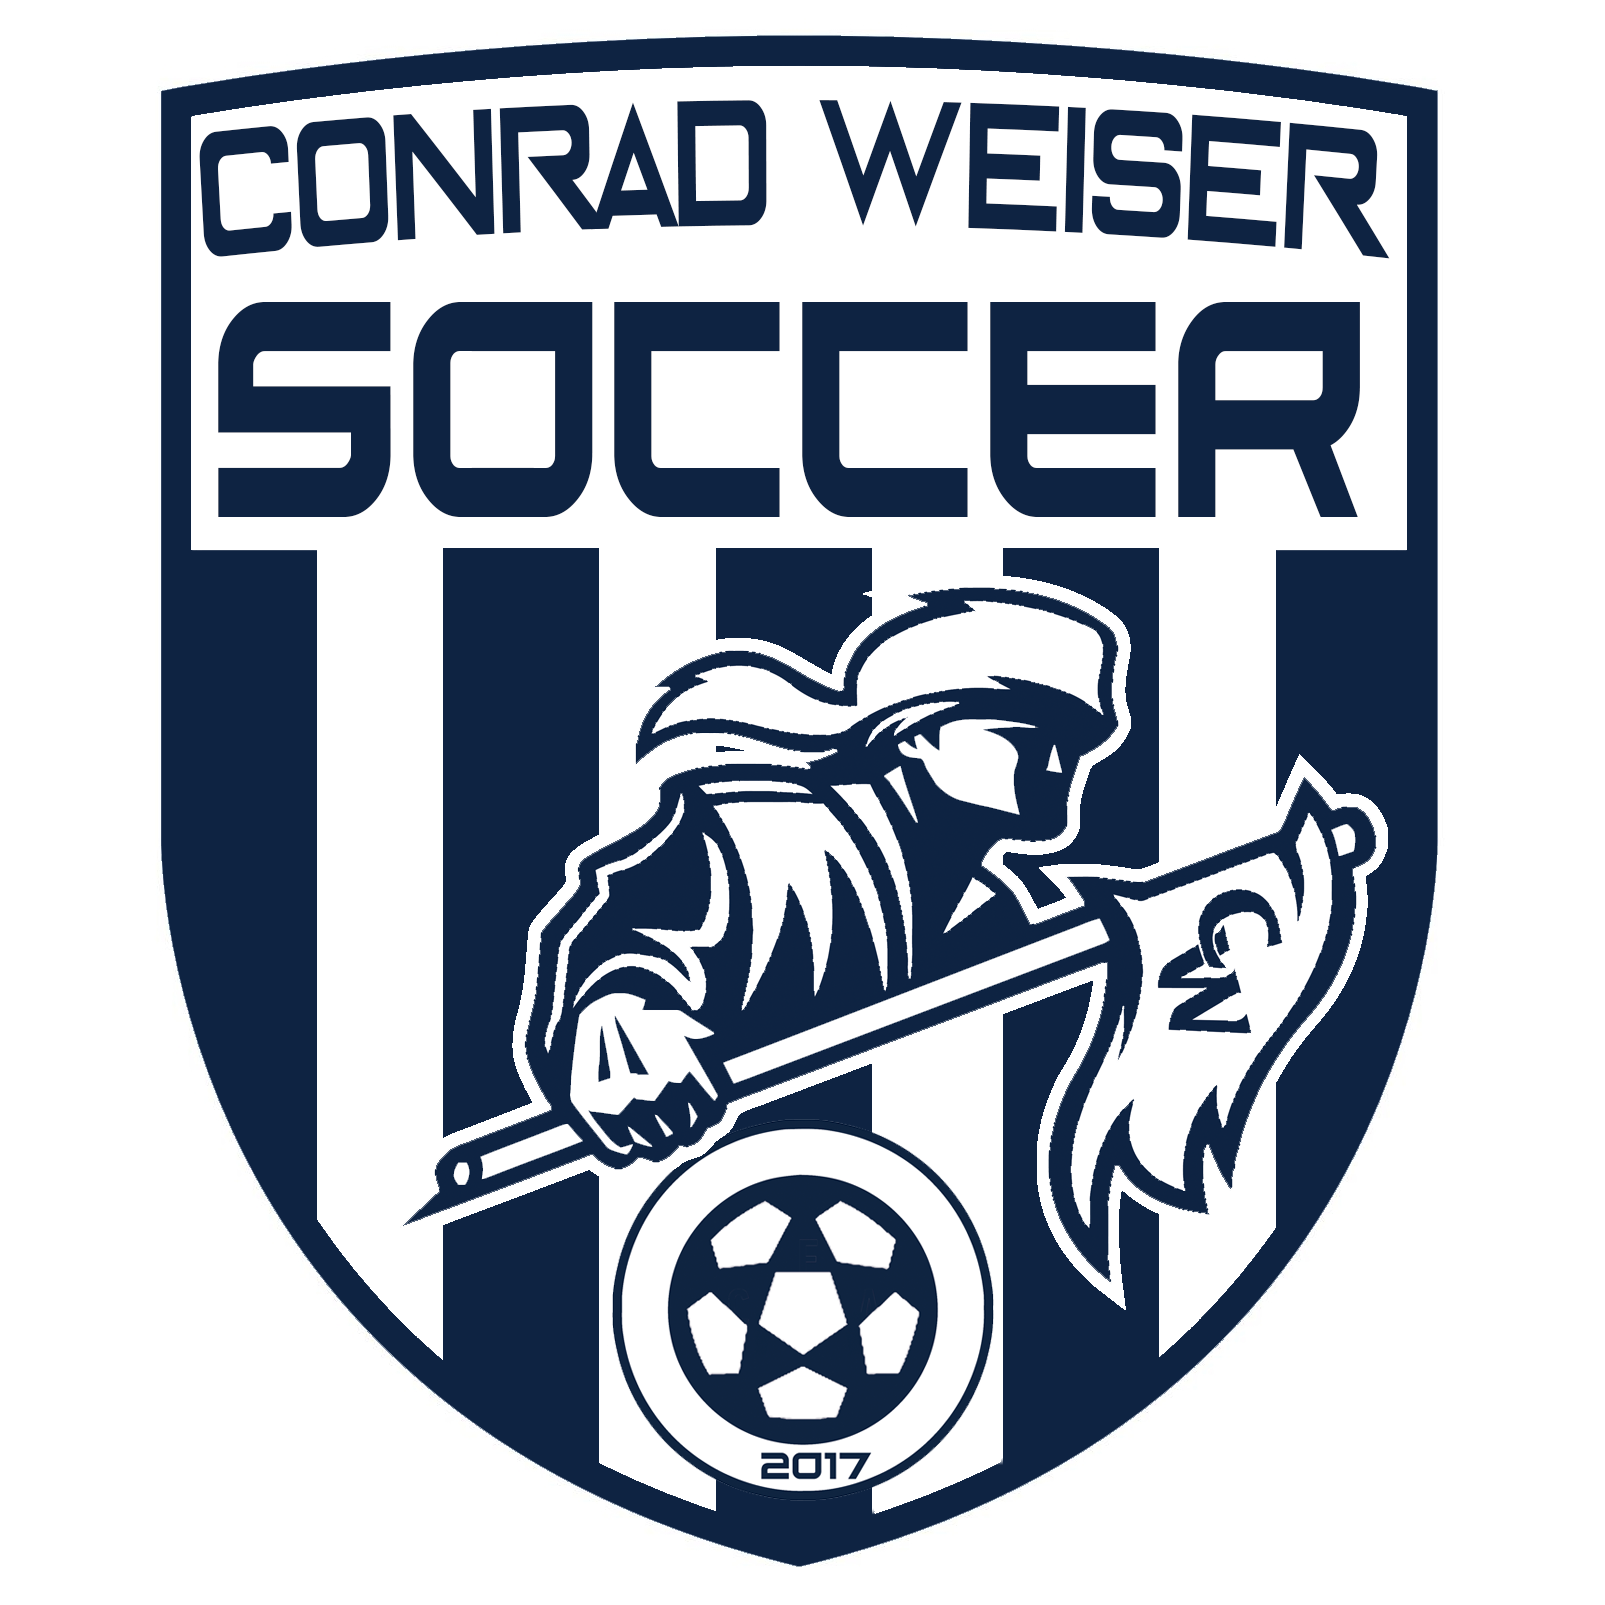 CW Soccer Tee 2017.png